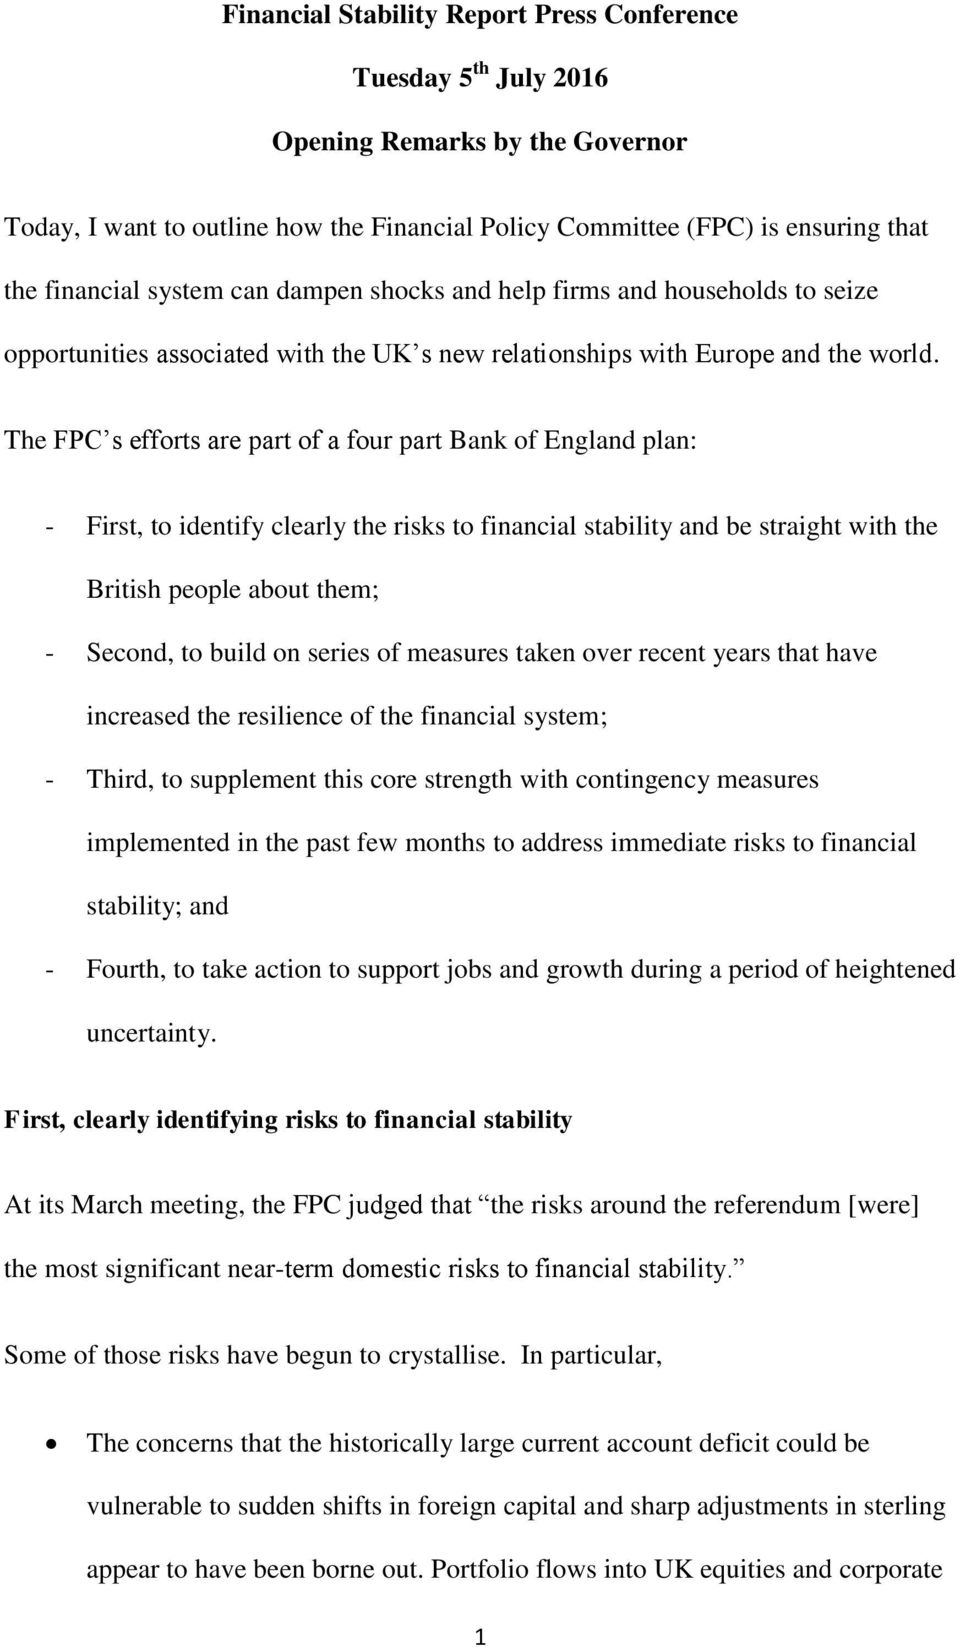 The FPC s efforts are part of a four part Bank of England plan: - First, to identify clearly the risks to financial stability and be straight with the British people about them; - Second, to build on